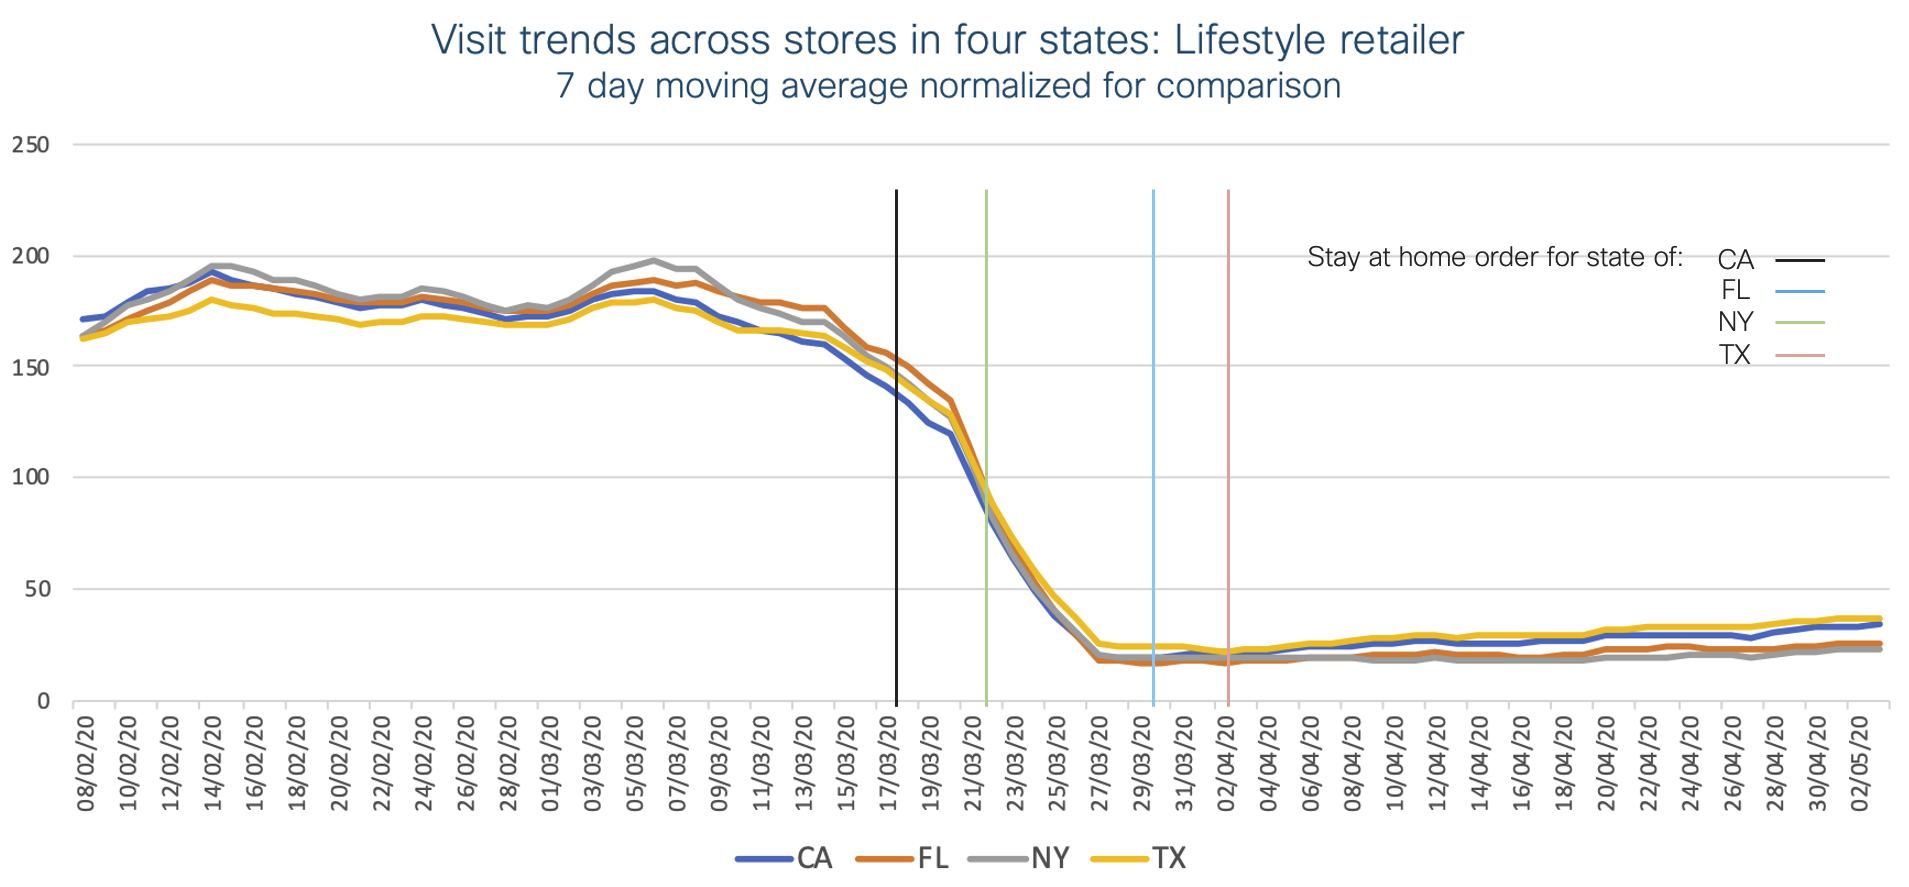 Visit trends across stores in four states: Lifestyle retailer